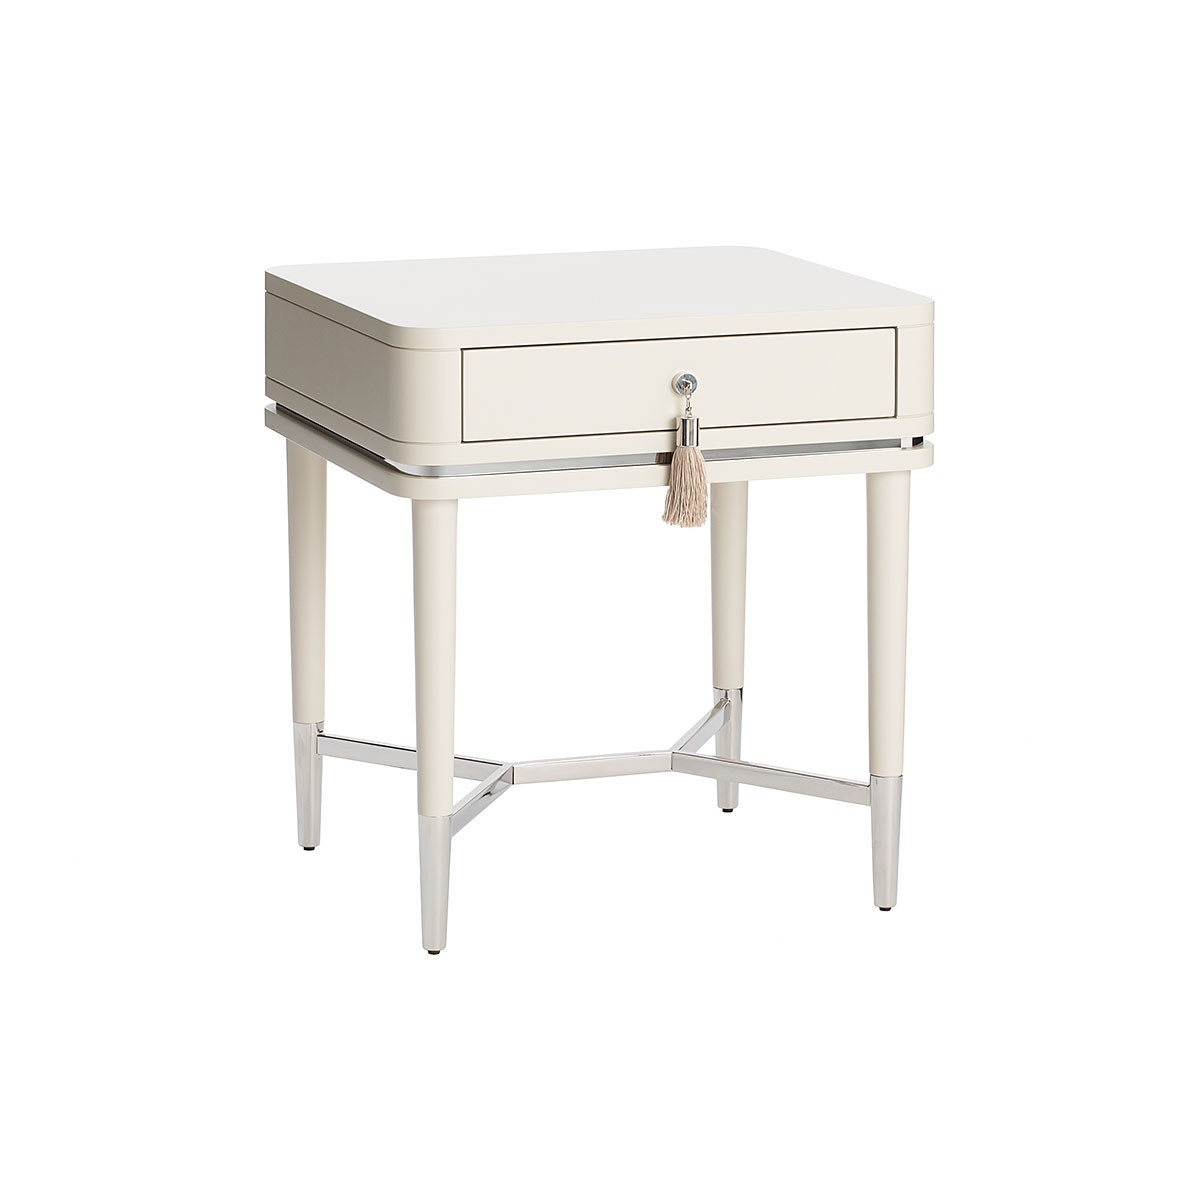 The Luzia Bedside Table